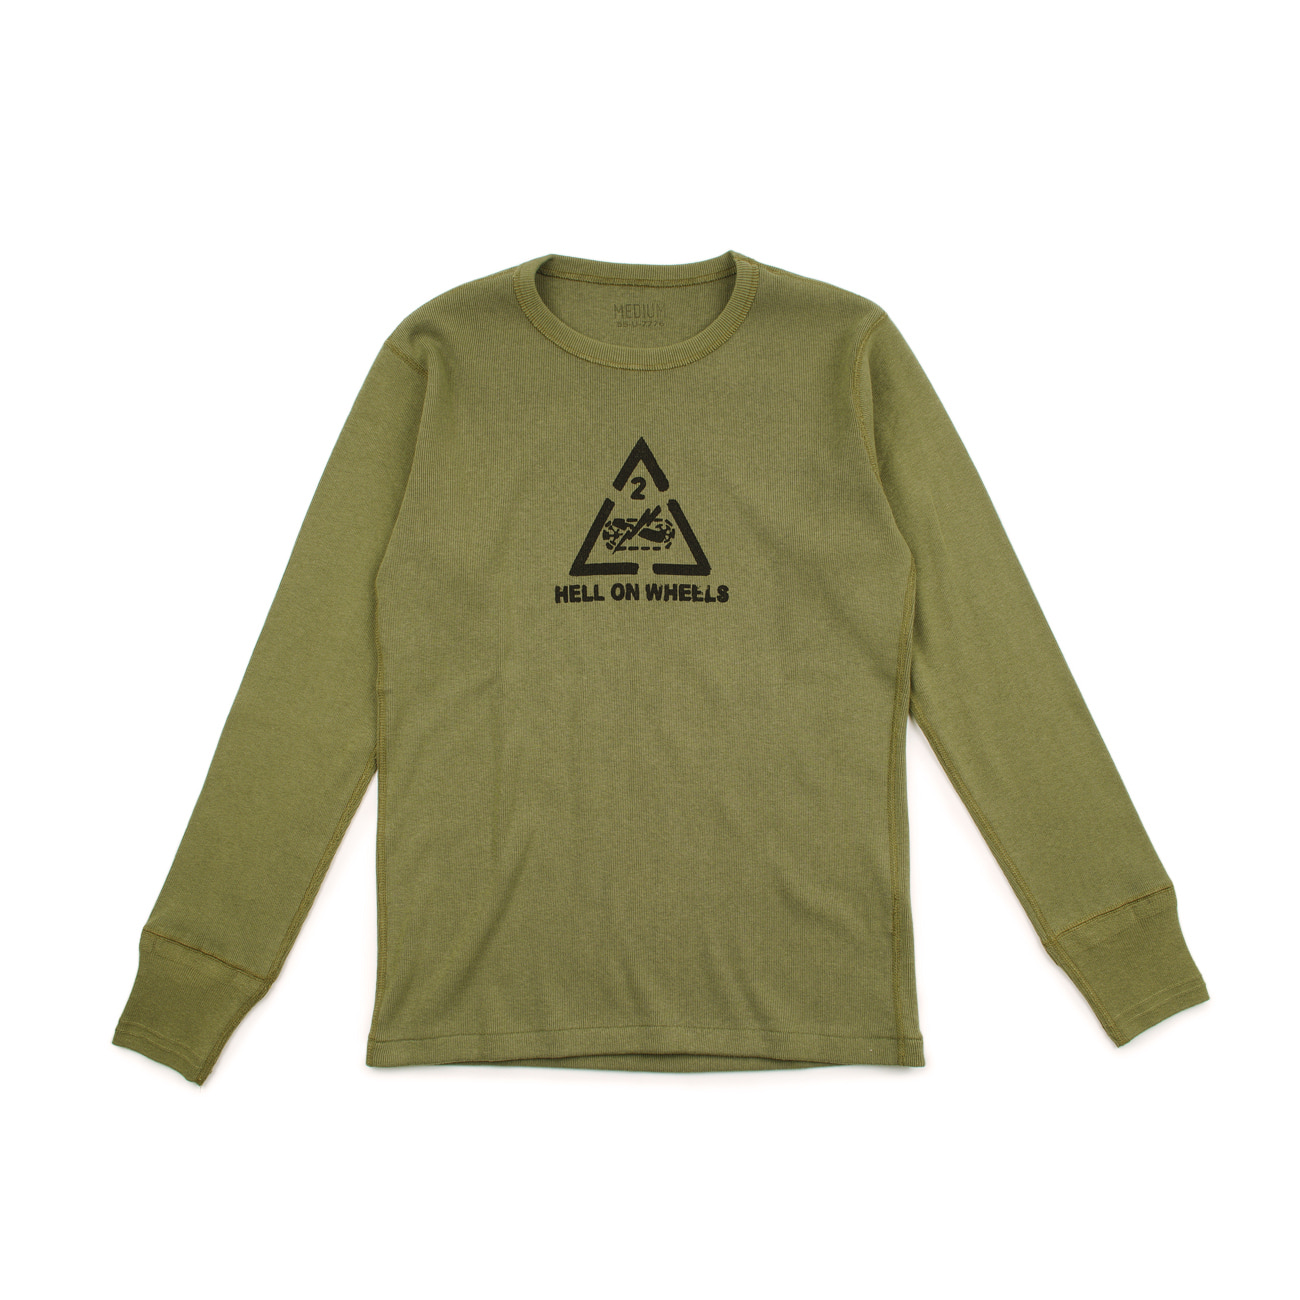 U.S.ARMY Undershirt / Hell On Wheels